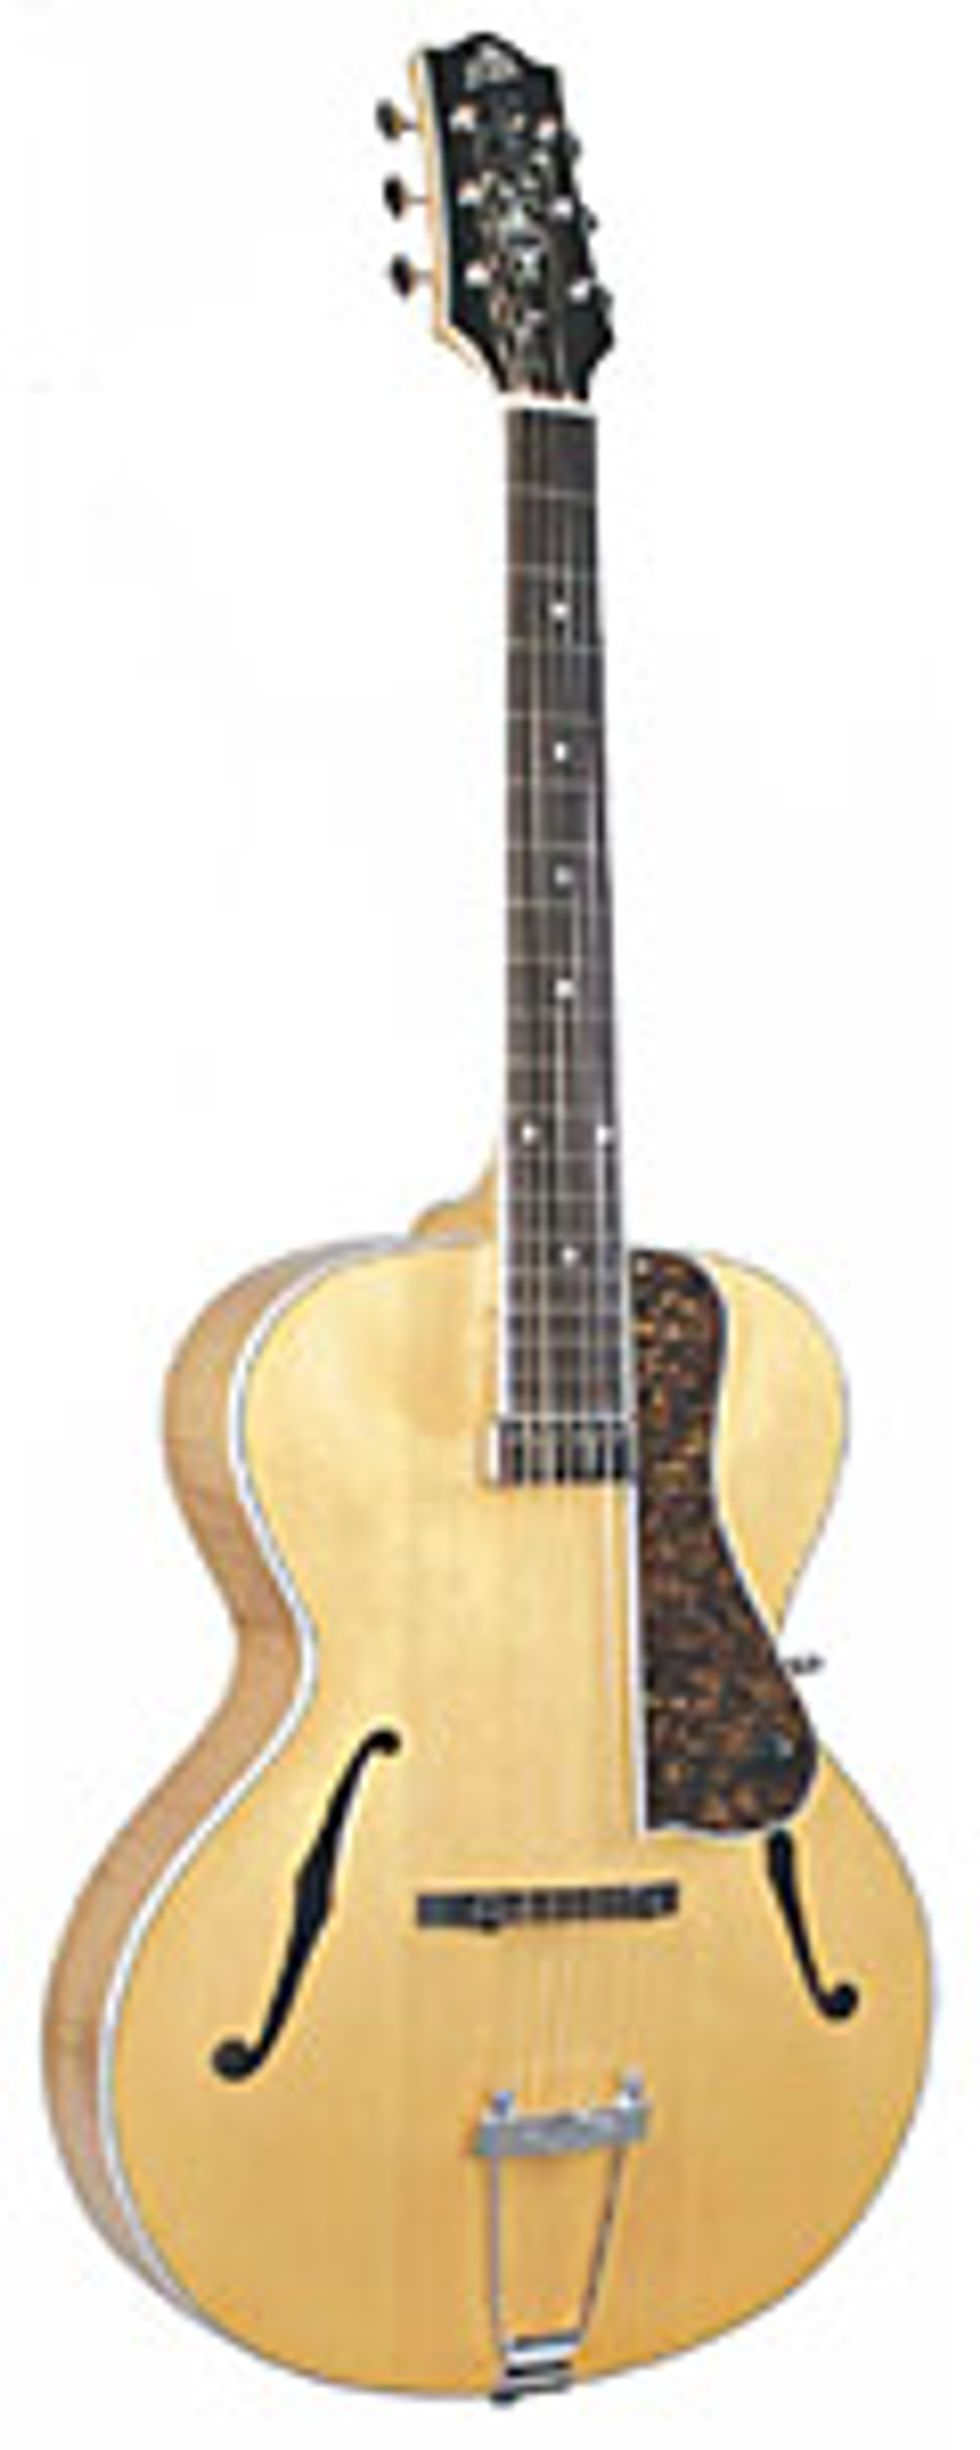 The Loar Archtop LH-550